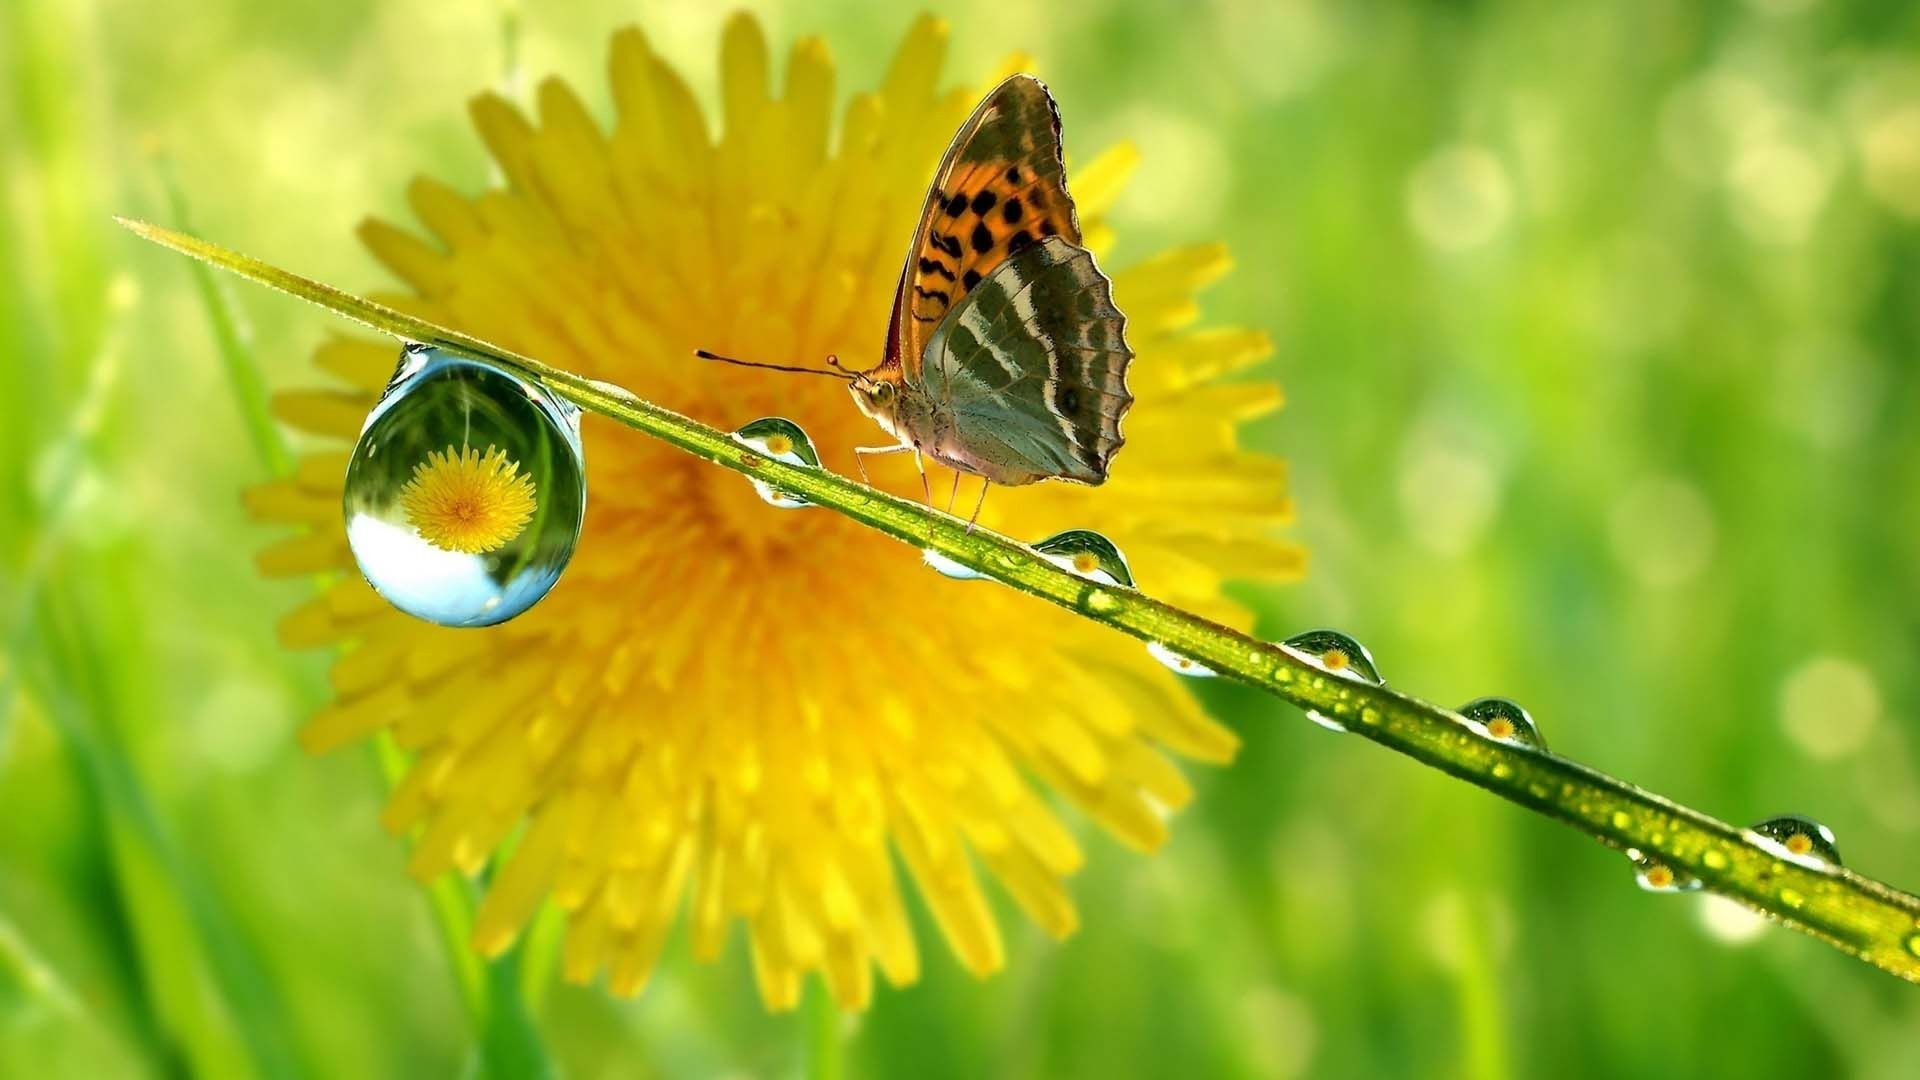 Pretty butterfly wallpaper 59 images - Hd pics of nature with birds ...